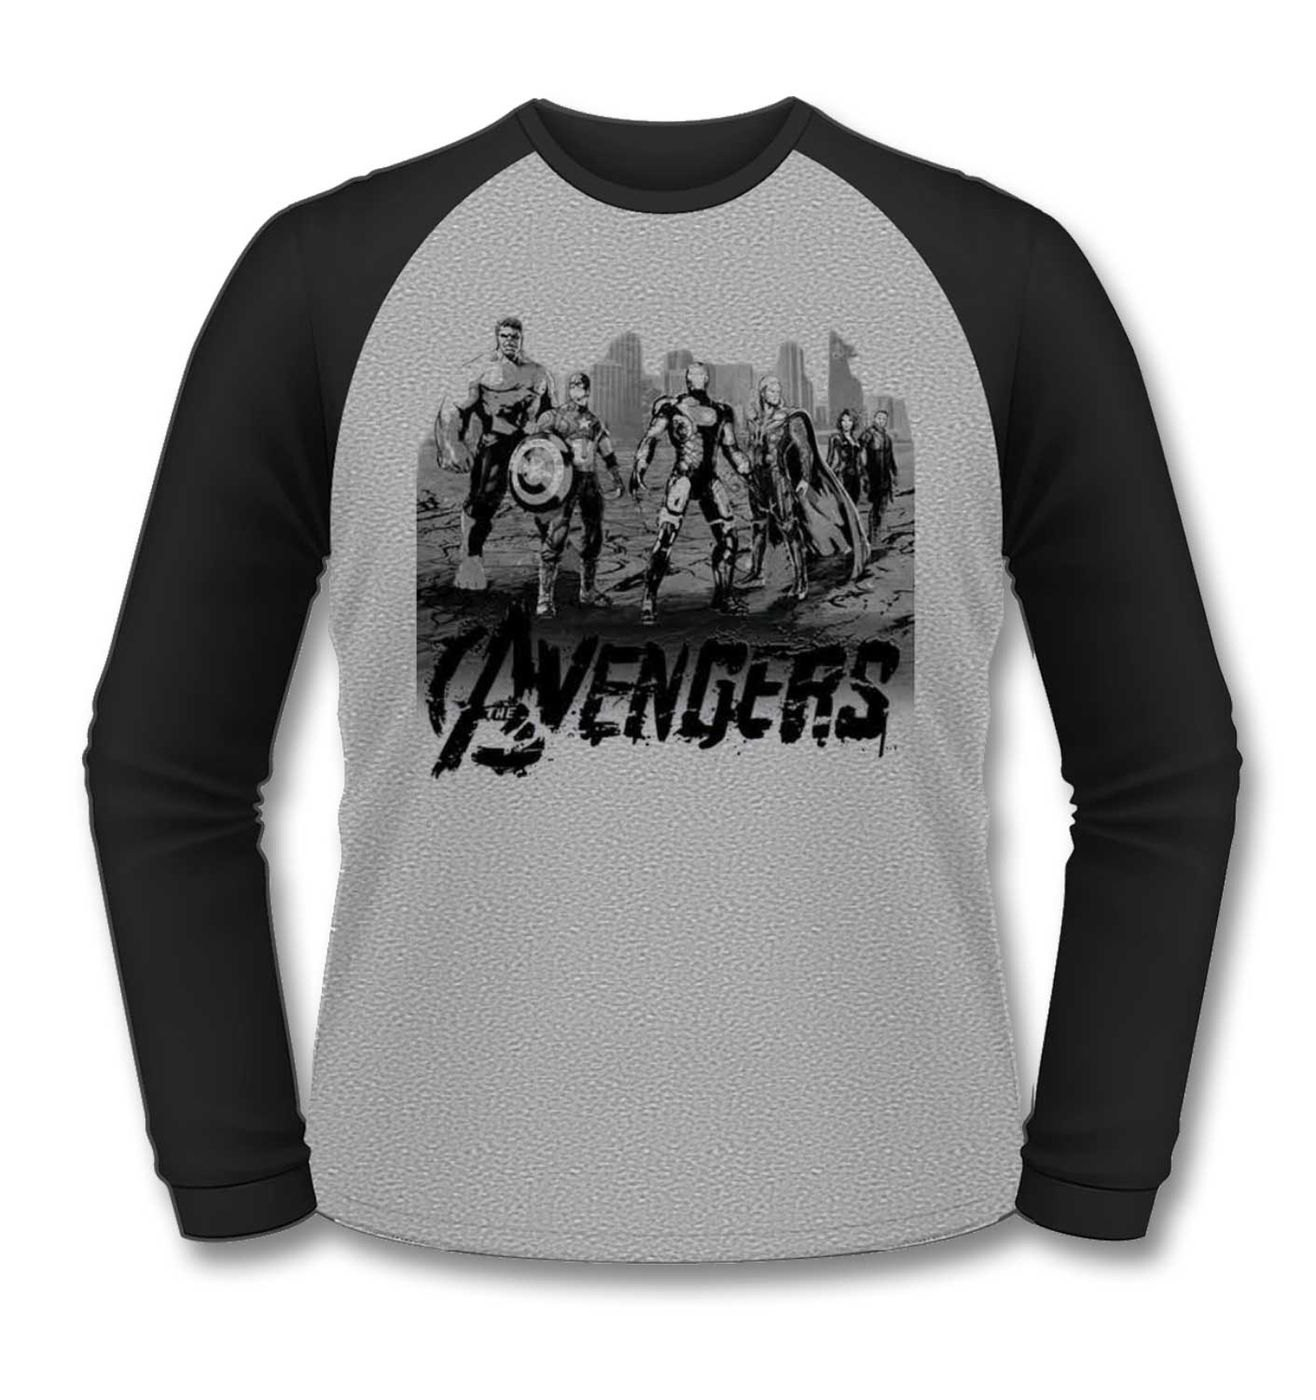 Avengers baseball t-shirt - Official Marvel Avengers:Age Of Ultron tee